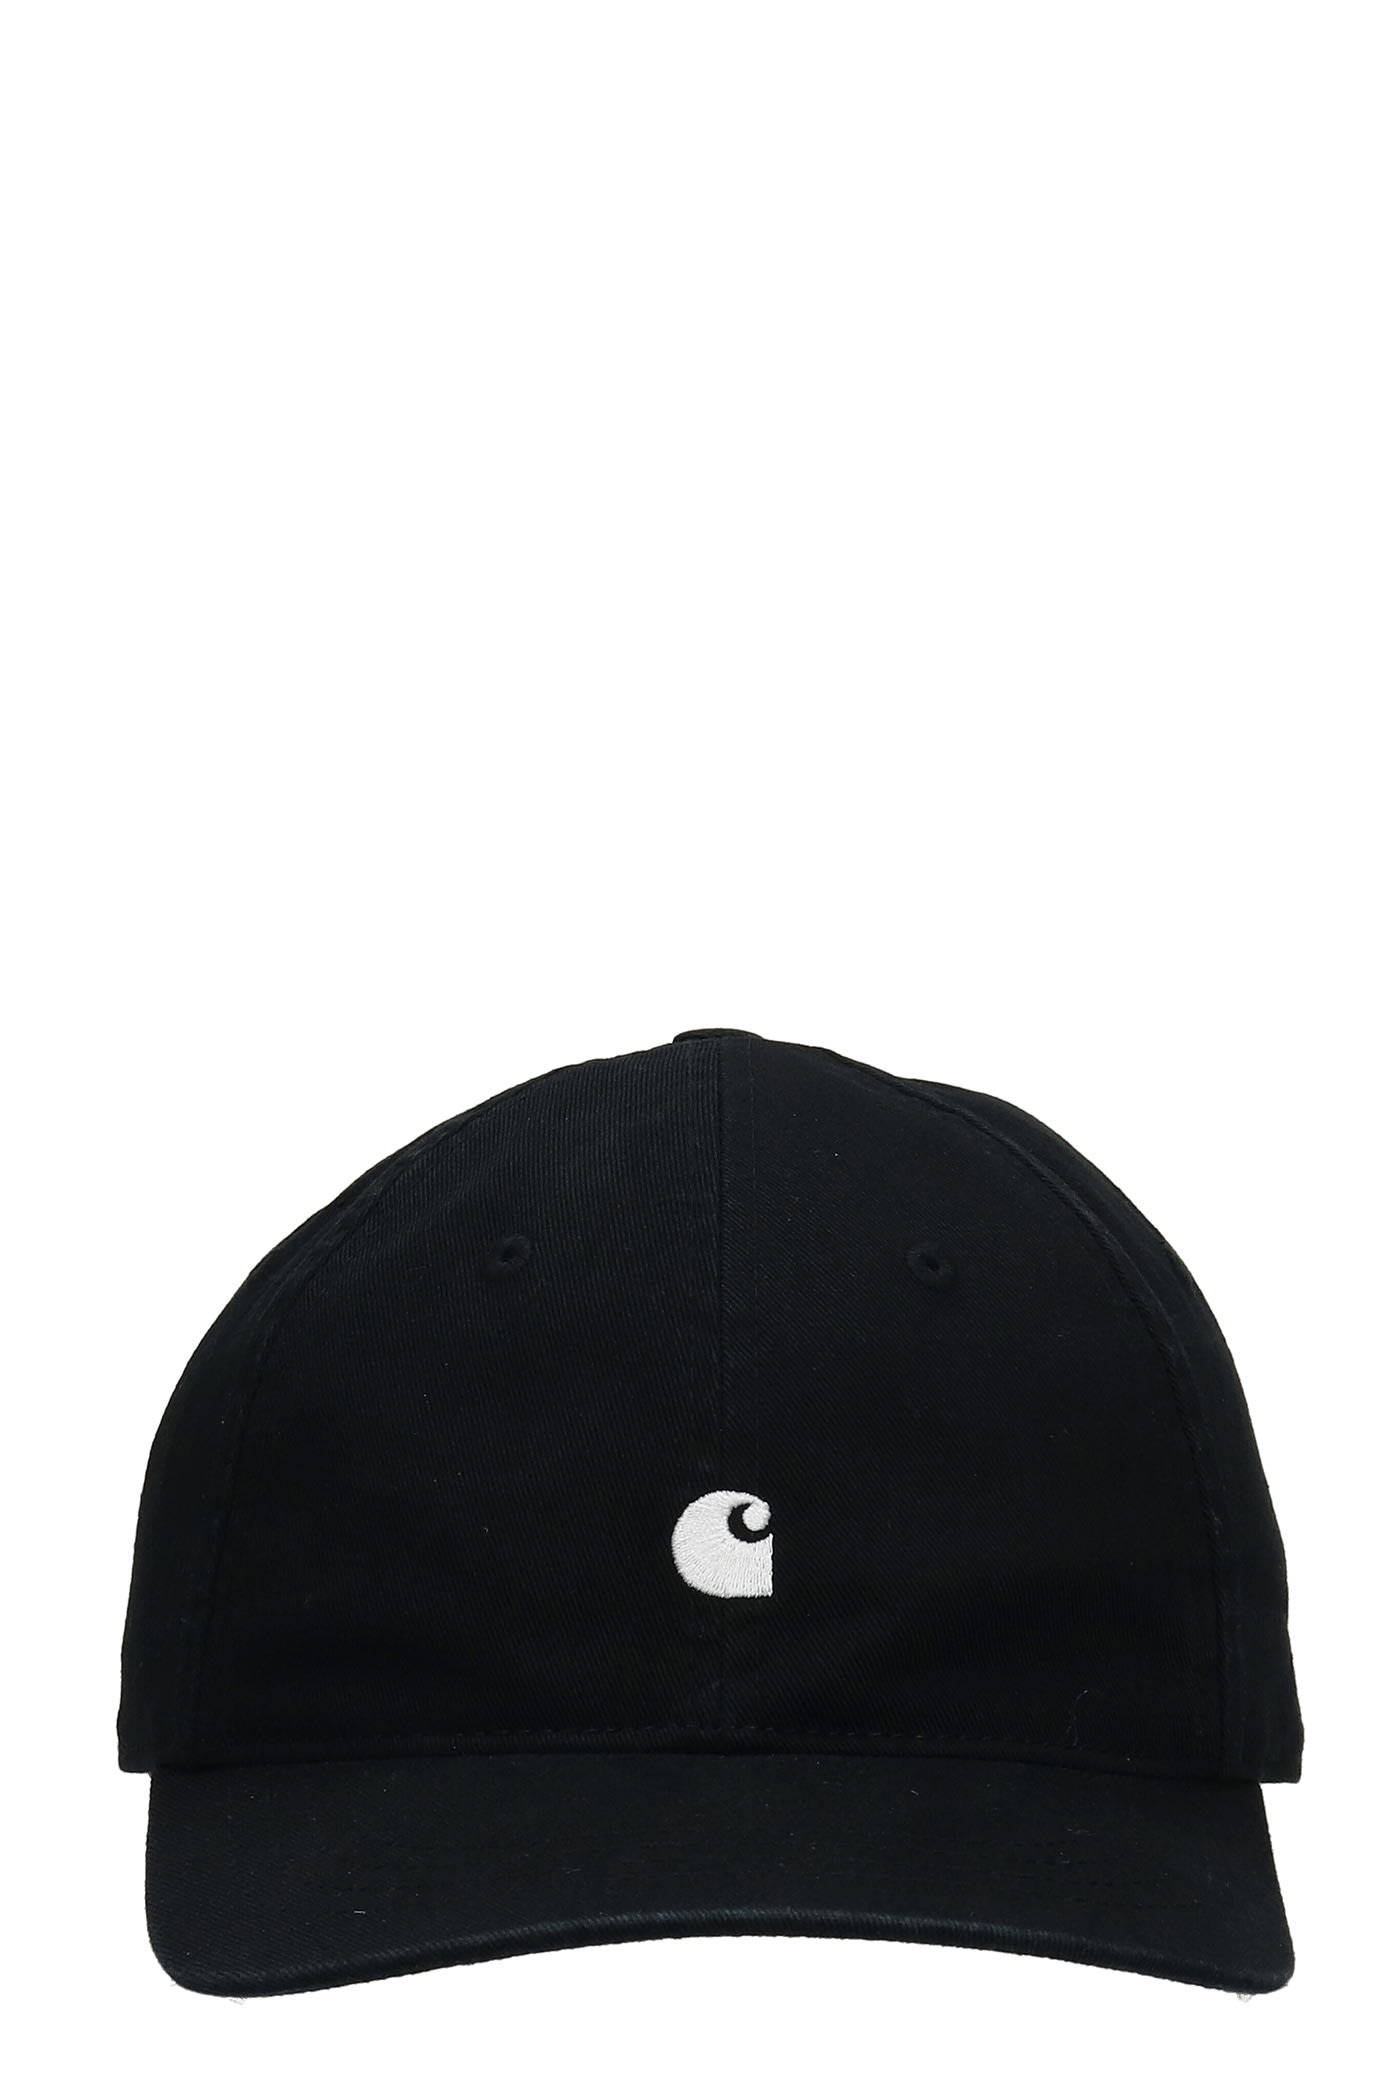 Hats In Black Cotton